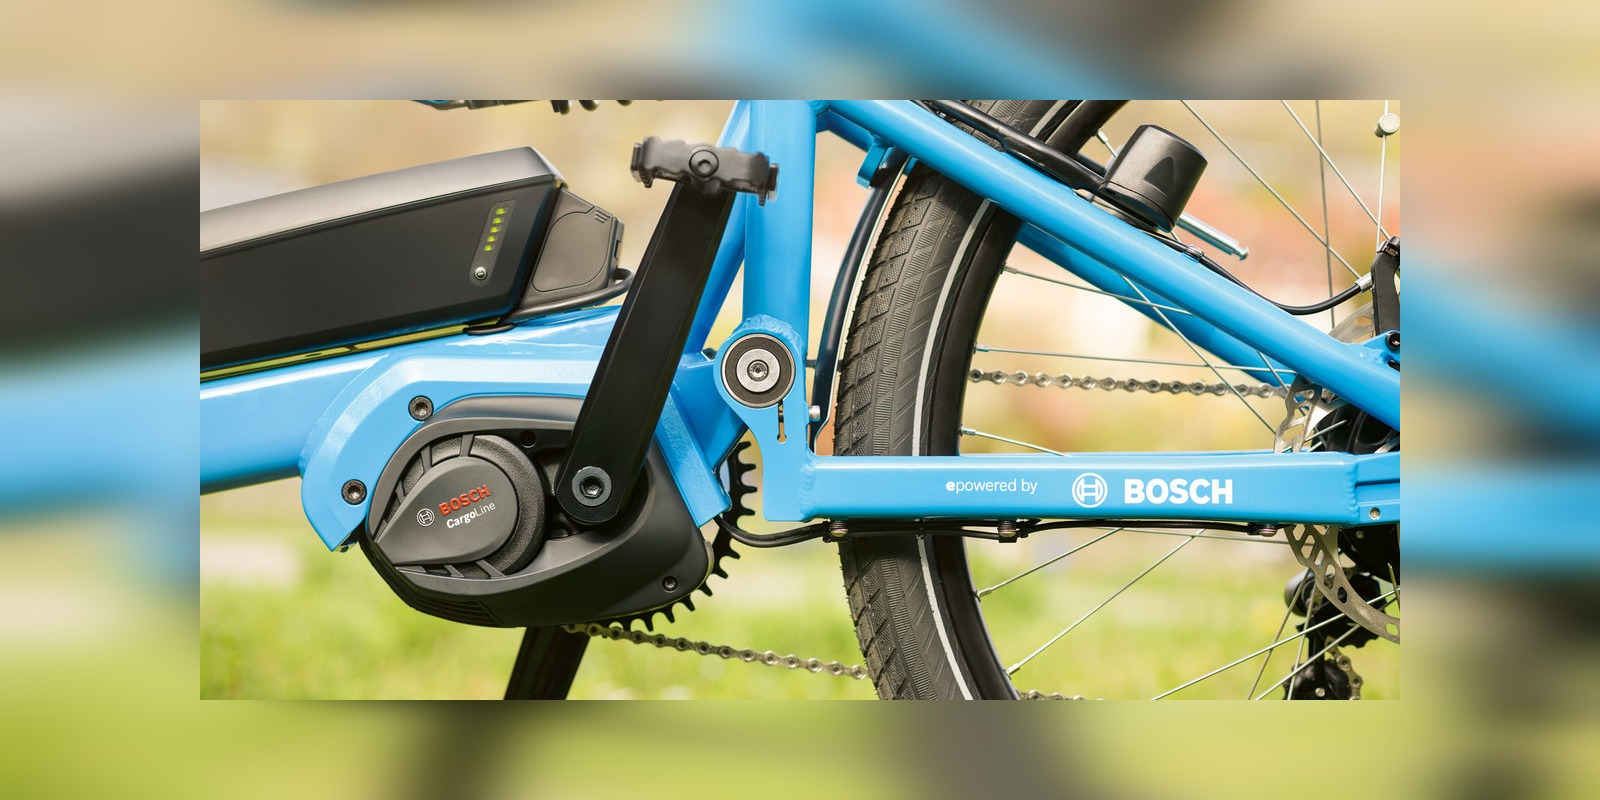 Bosch unveils new 2020 e-bike motors and batteries, but are the updates enough?